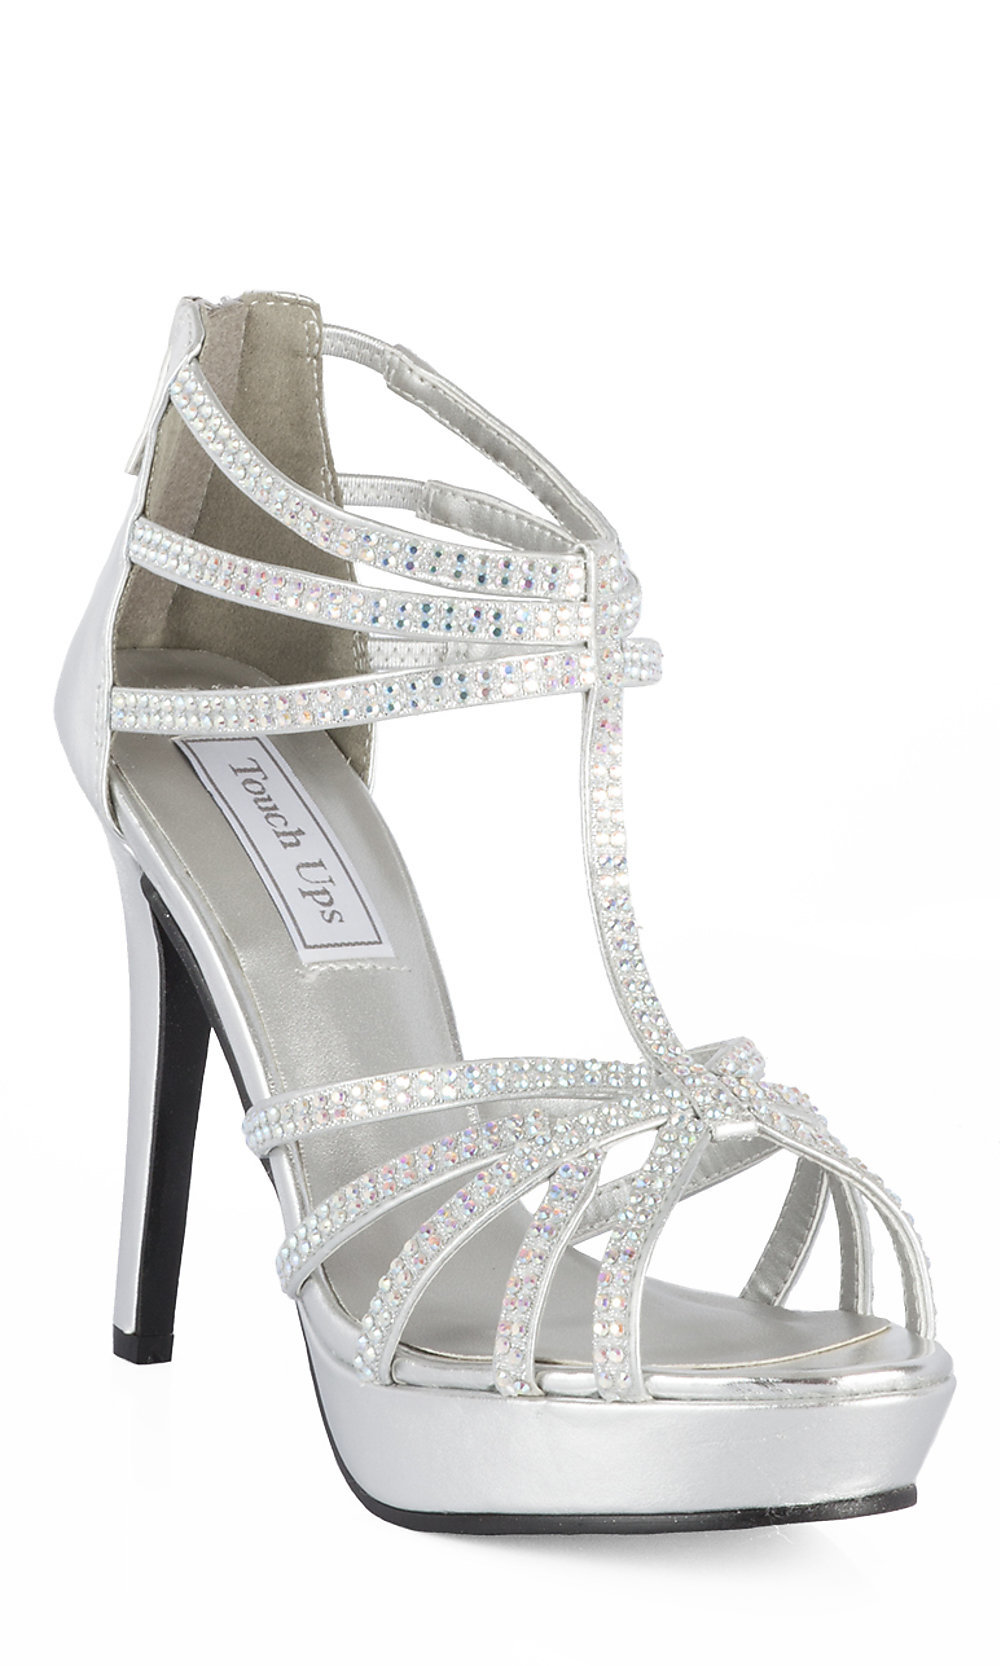 "Silver Open Toe 4"" Prom Shoes"